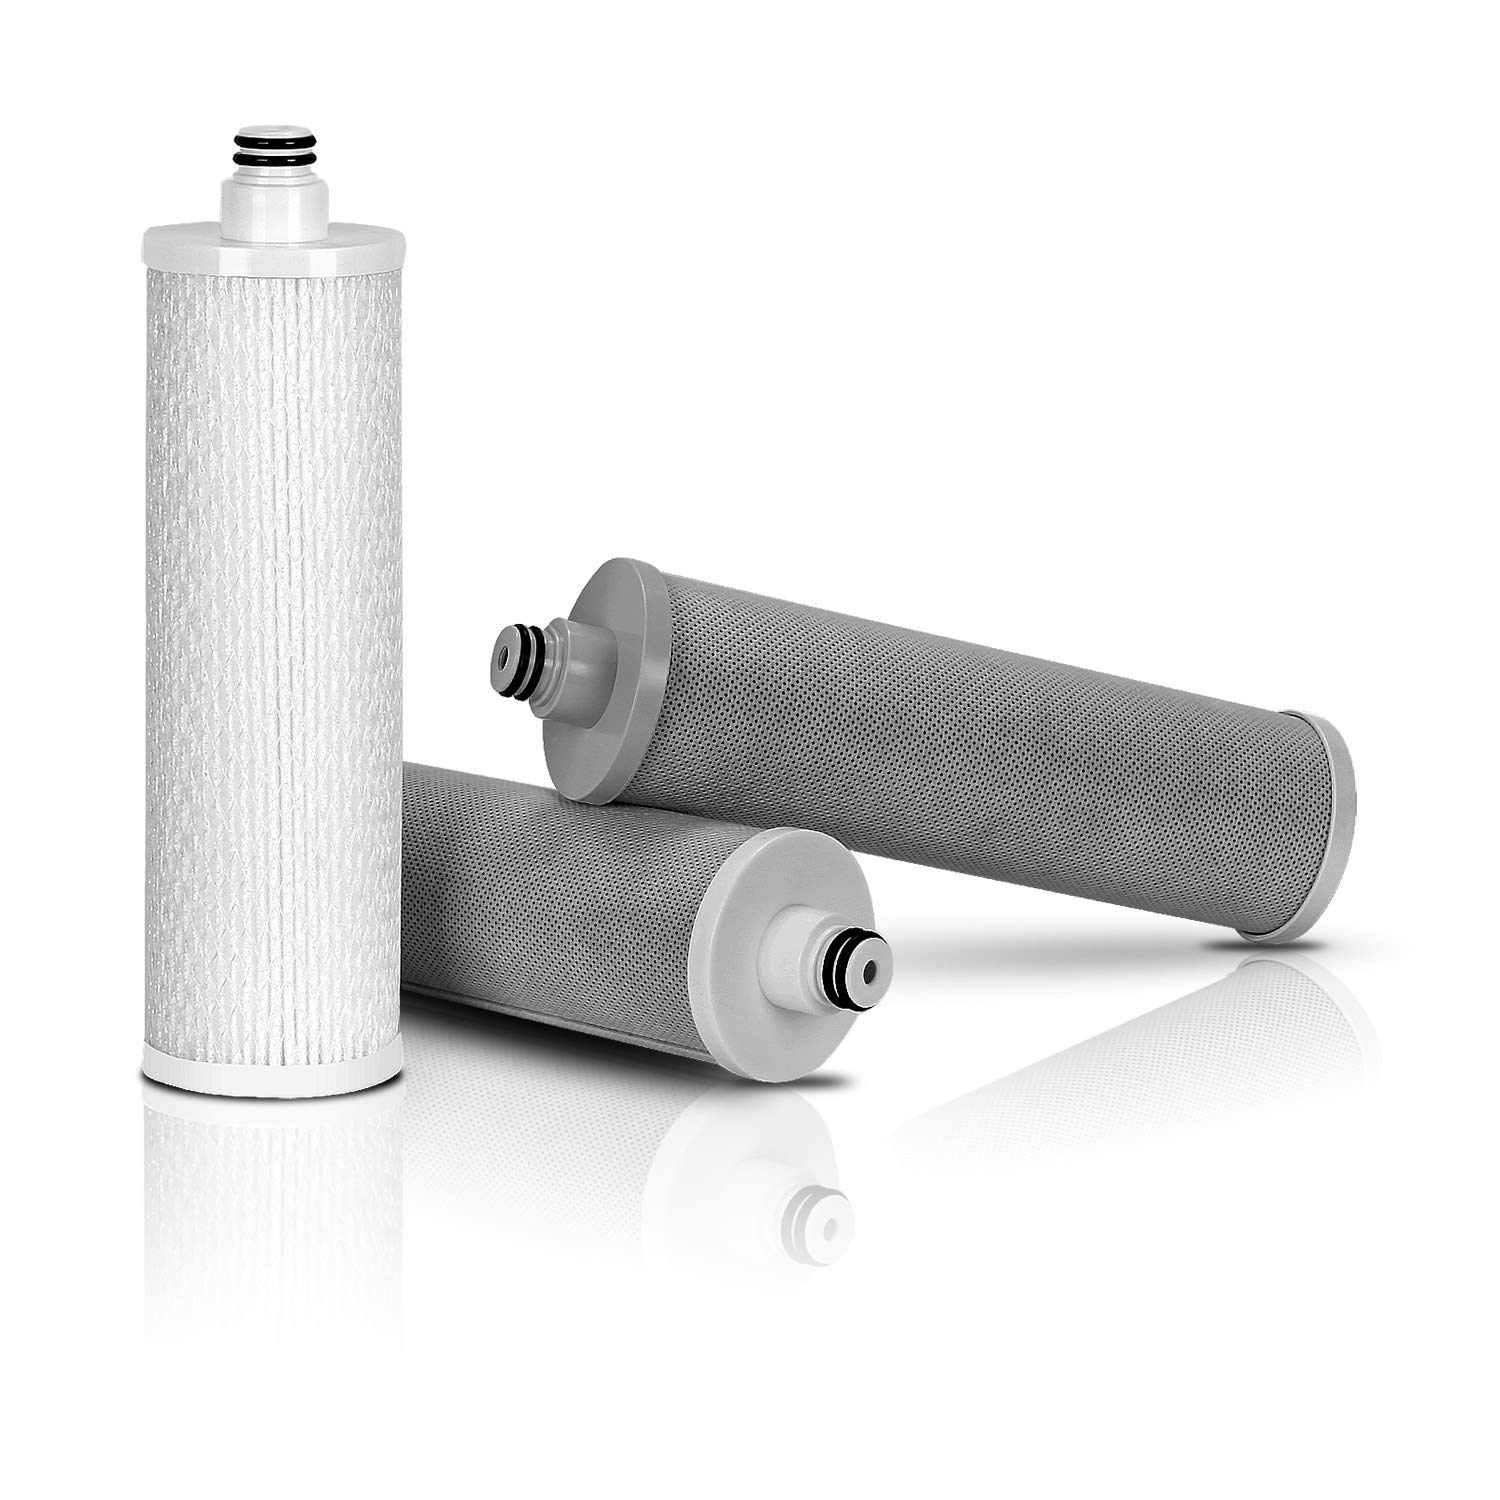 3 Pack FRIZZLIFE M3004 Replacement Filter for SP99 SK99 Water Filter System